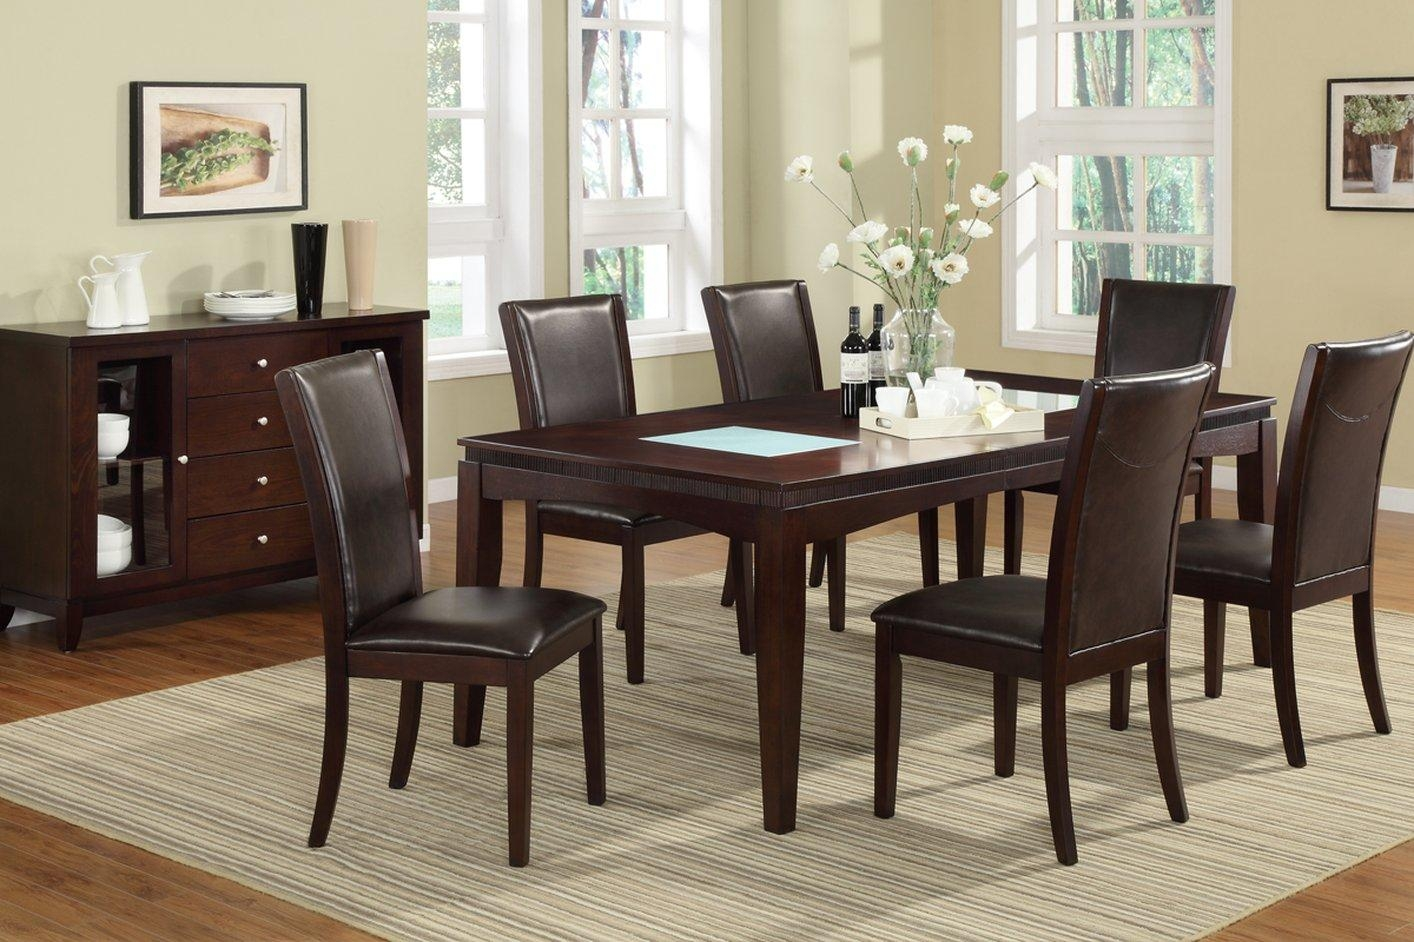 Poundex F2165 Brown Glass Dining Table – Steal A Sofa Furniture Pertaining To Dining Sofa Chairs (View 6 of 20)